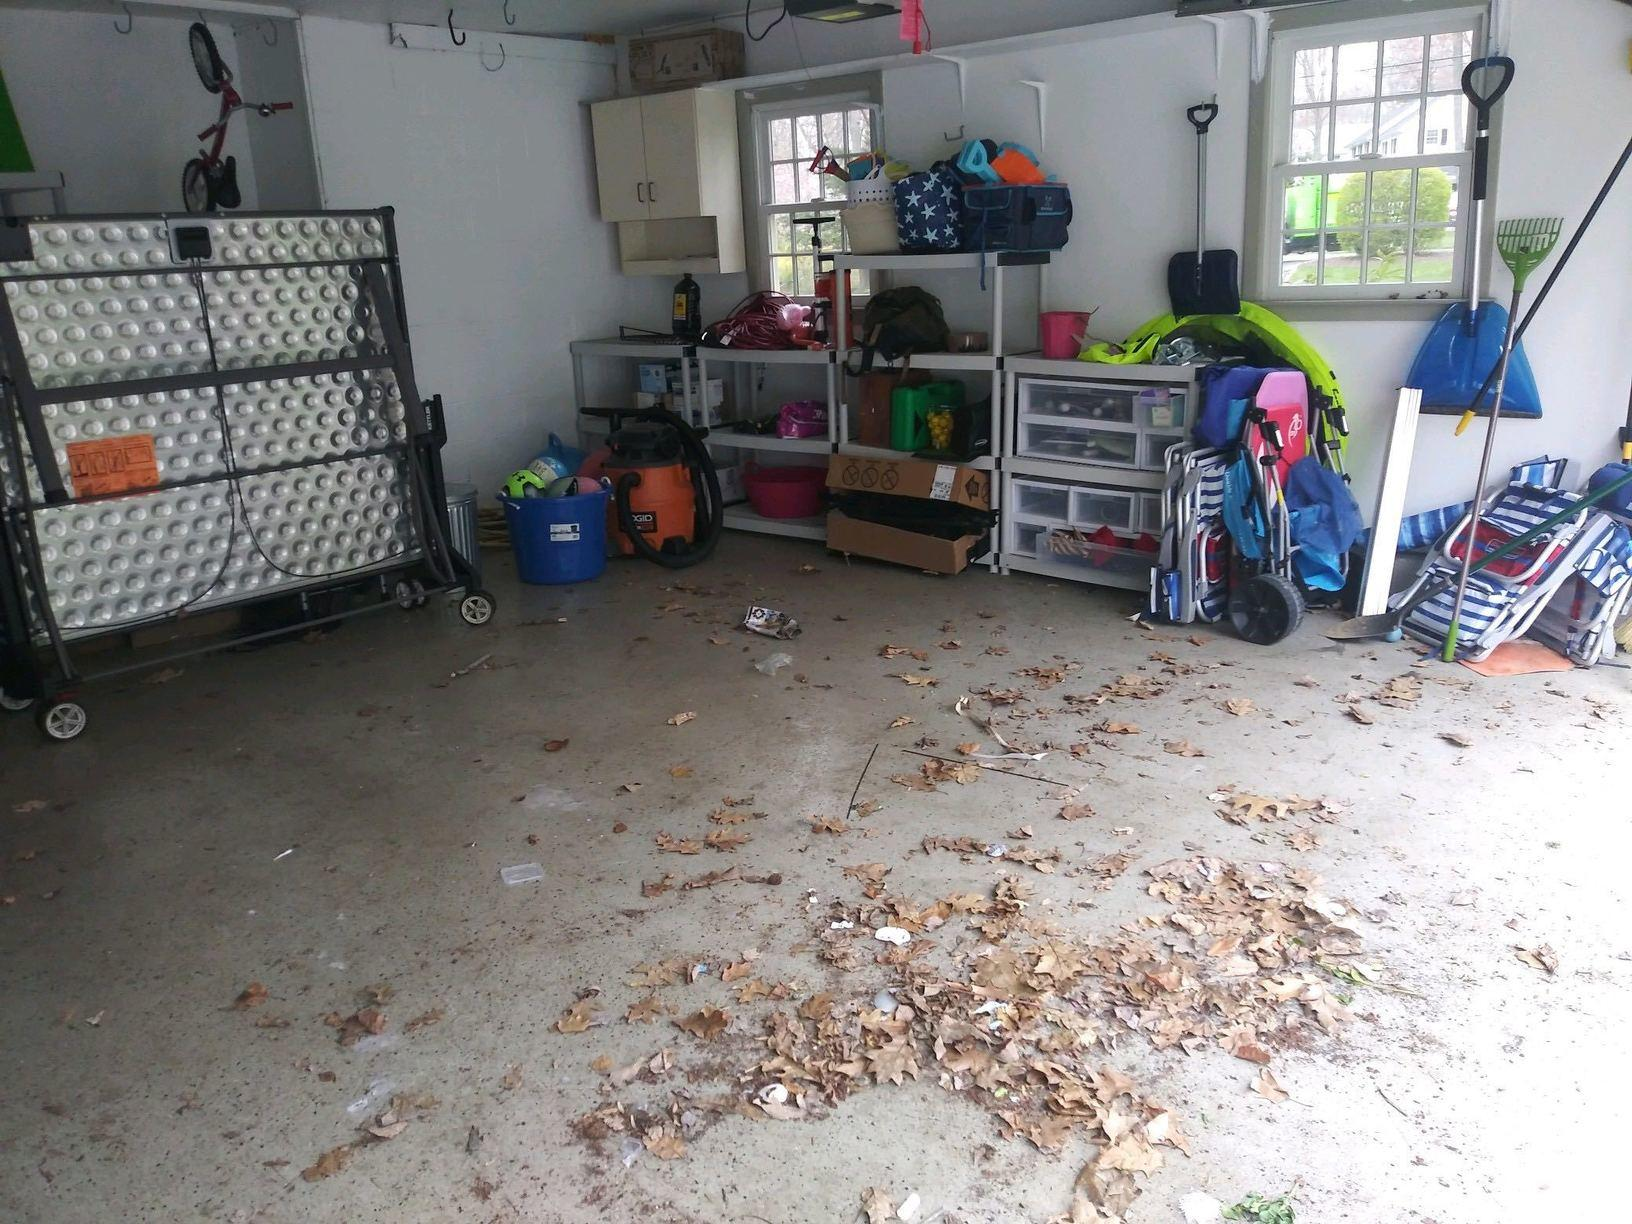 Garage Cleanout in Darien, CT - After Photo